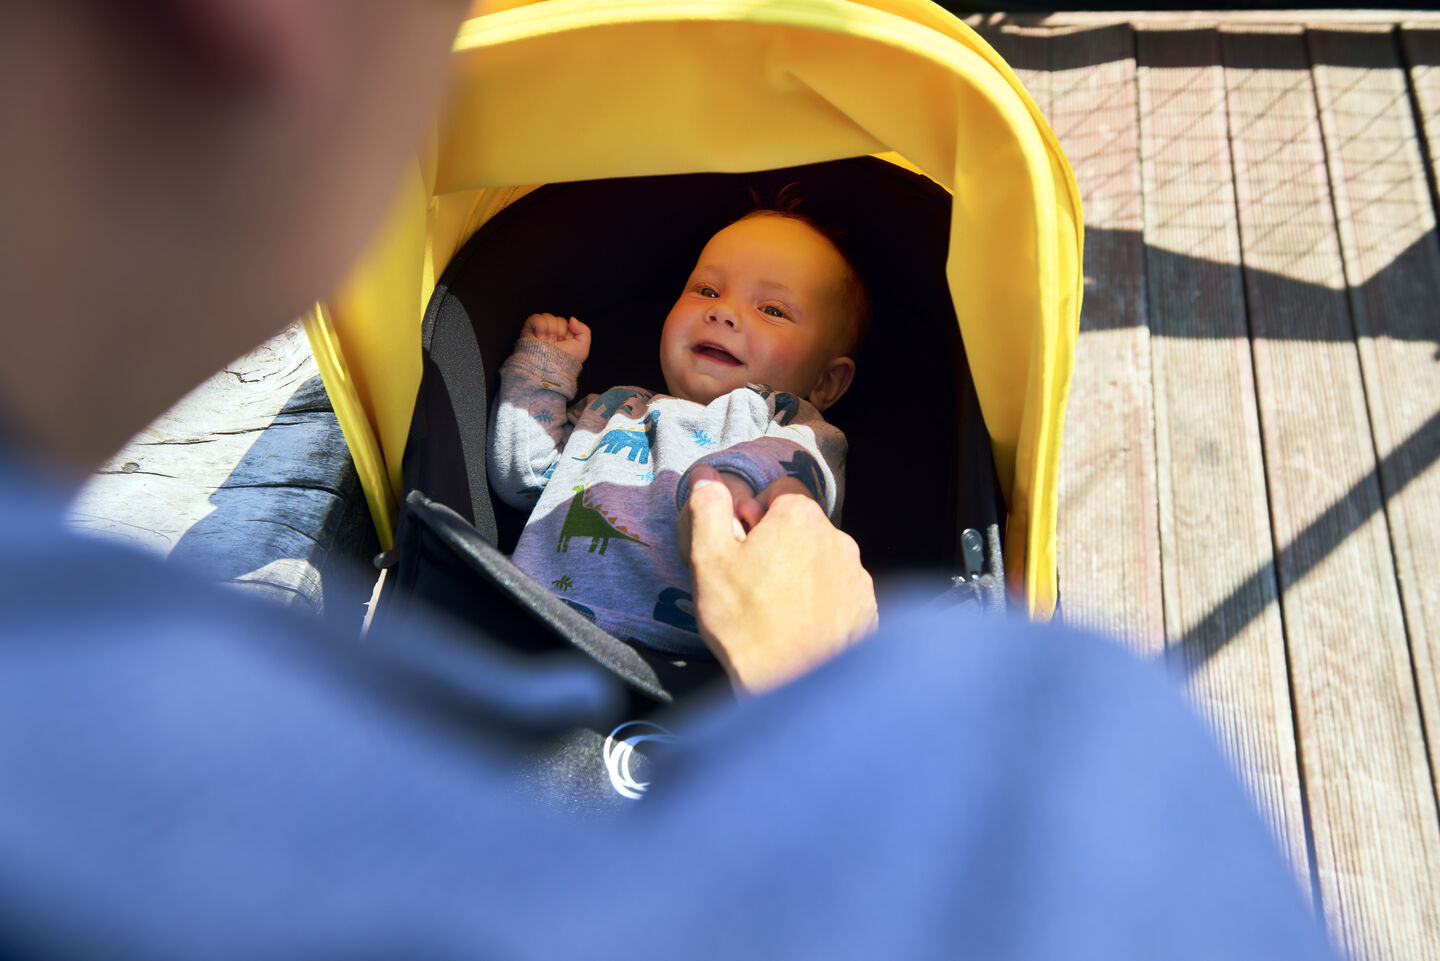 A baby happily smiling in their Bugaboo Bee 6 stroller featuring a yellow sun canopy. Bugaboo newborn stroller accessories highlight